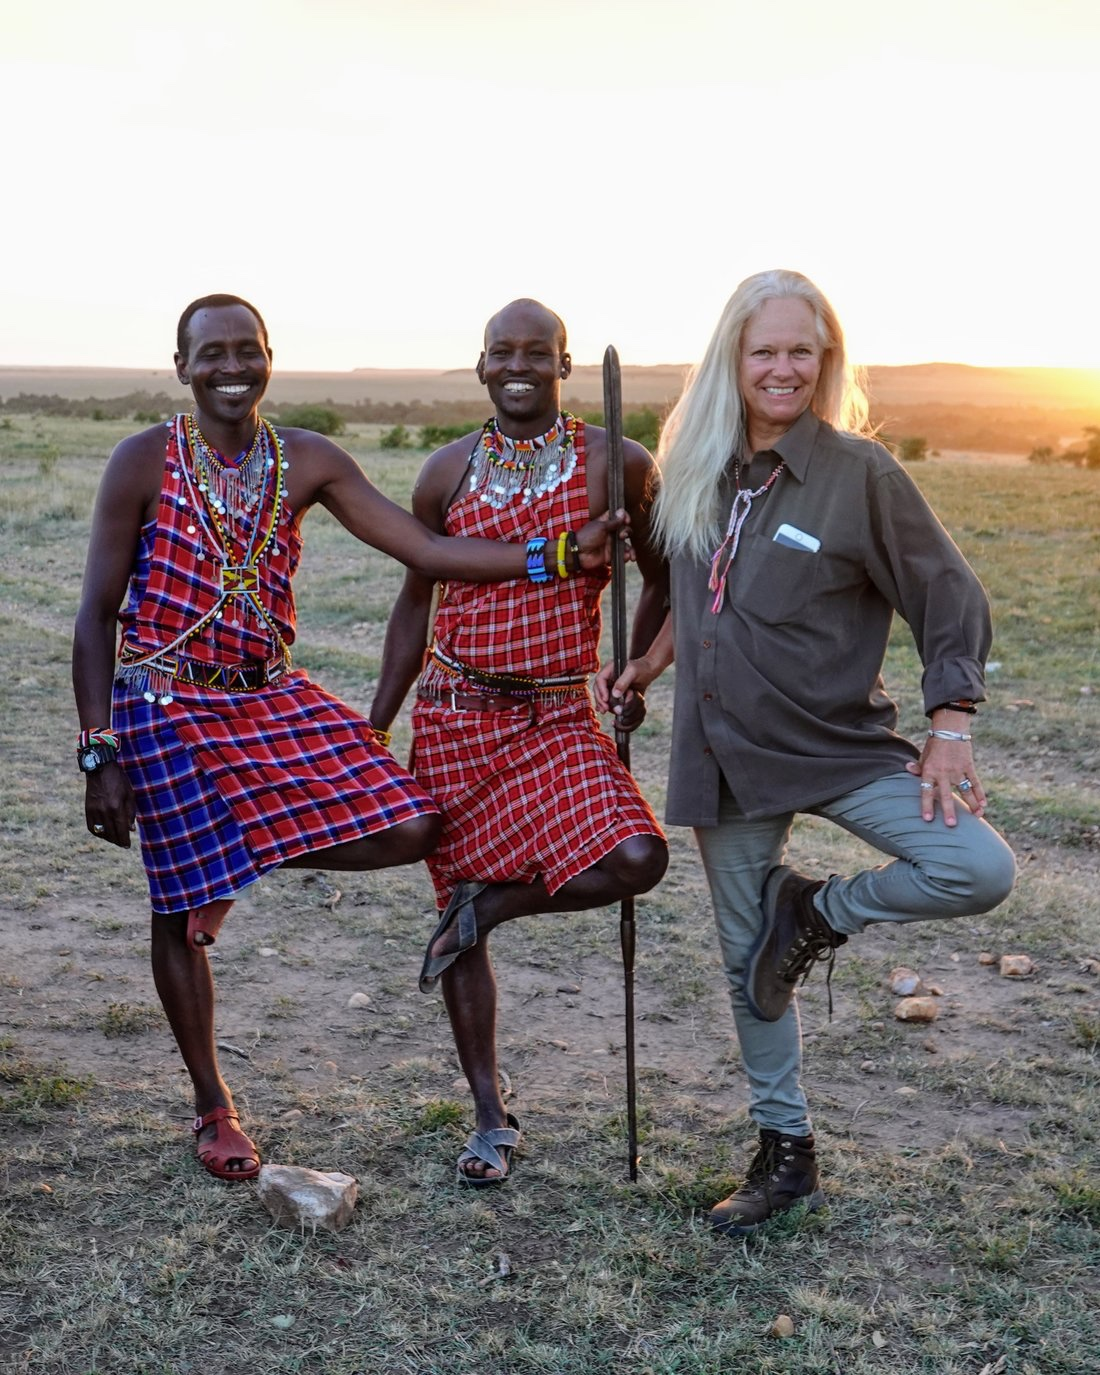 Whatever the story, wherever the journey, if you embrace playfulness, you have one leg up is what Don Young's Maasai trackers have taught me.